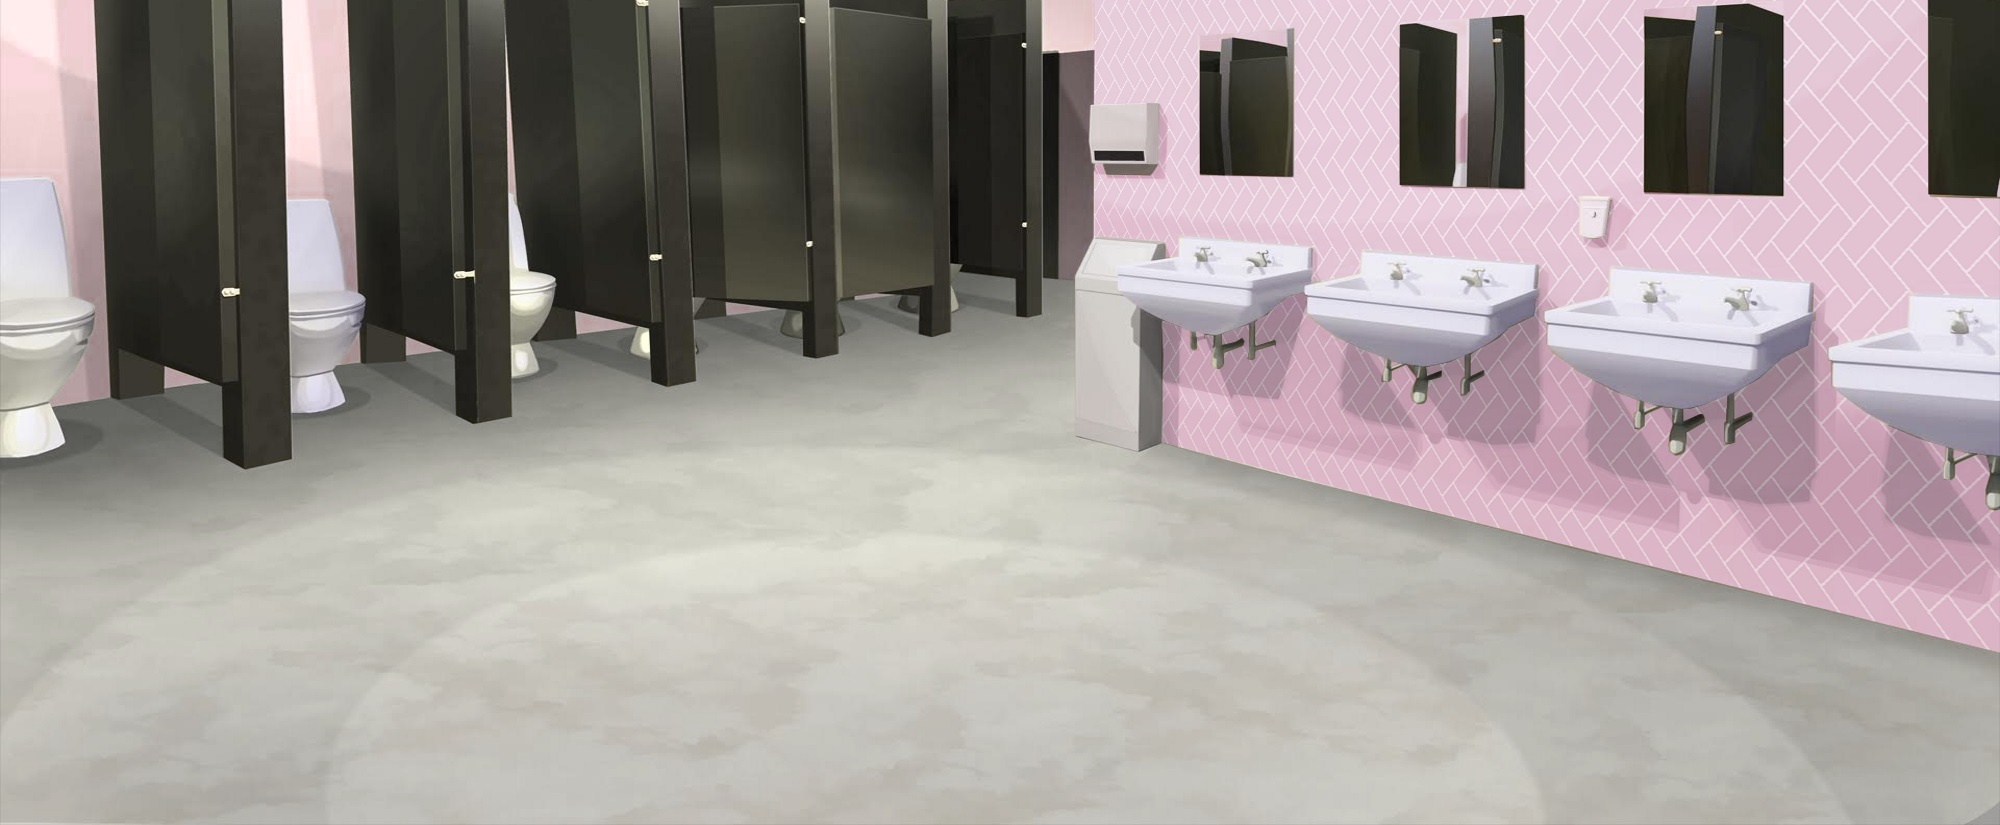 XL Background - Restroom 01.jpg